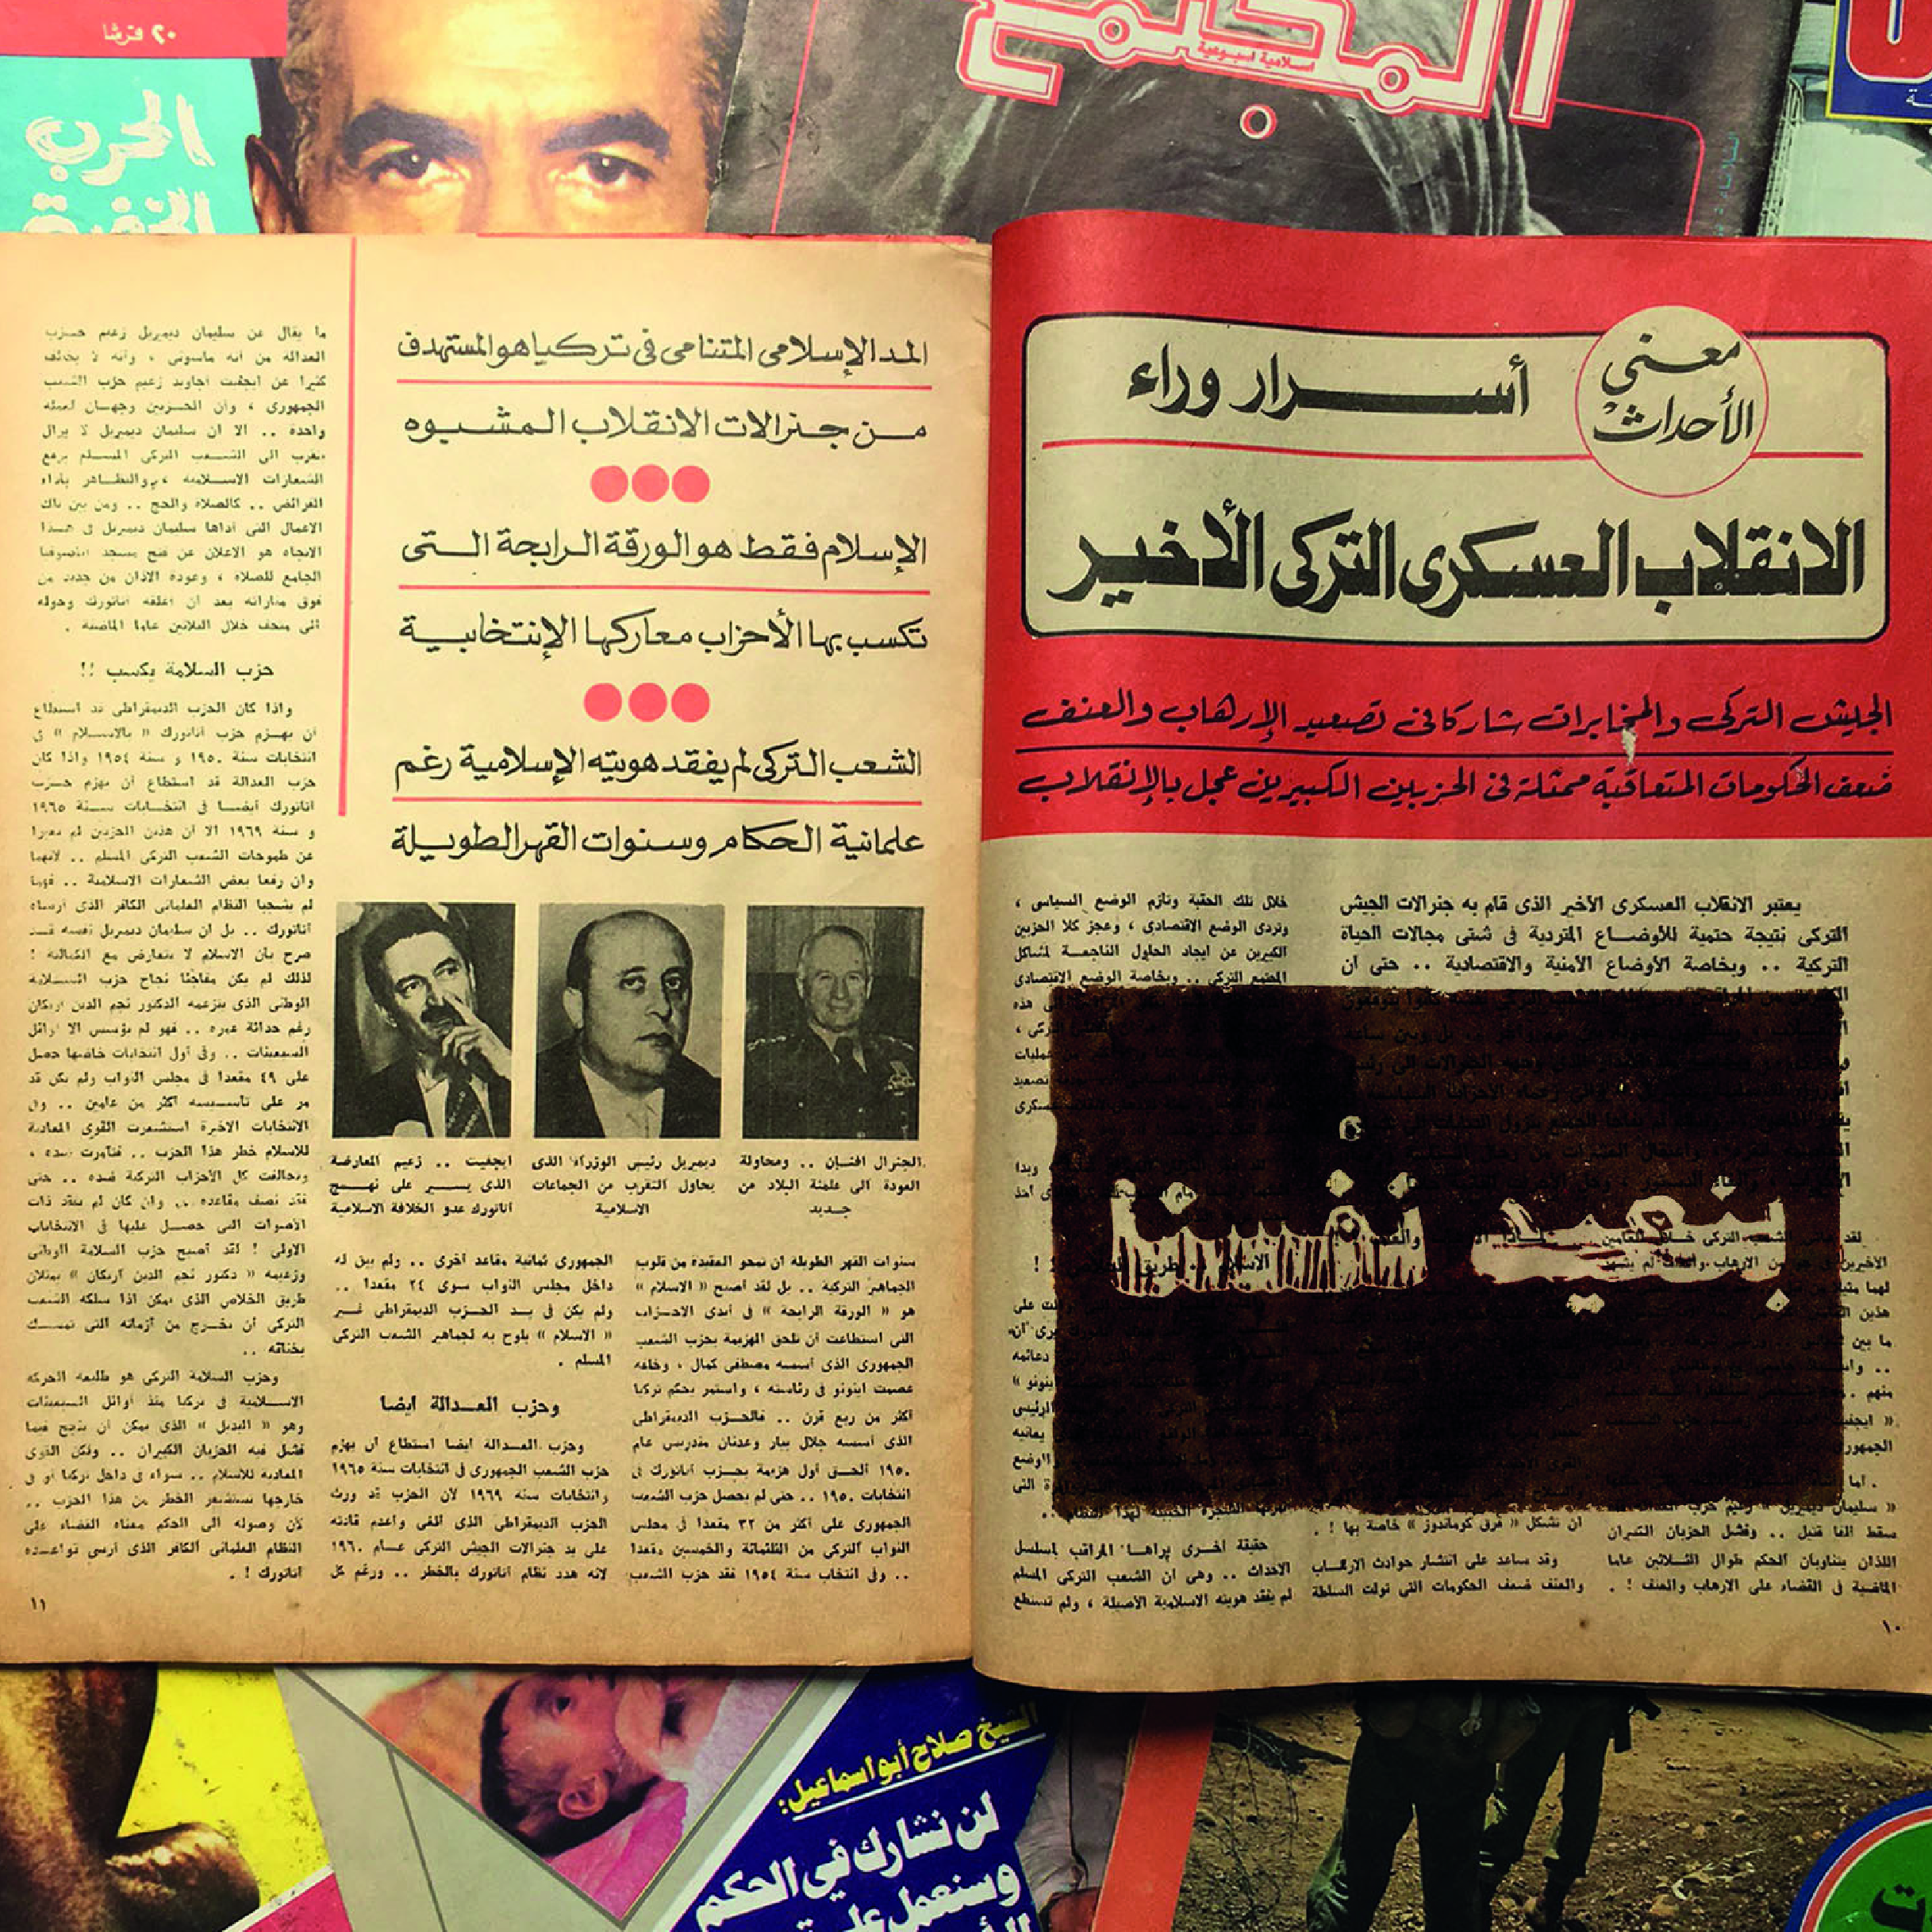 Bn3eed Nafsana-5: The Turkish revolution in 1980, reoccurring in 2016.